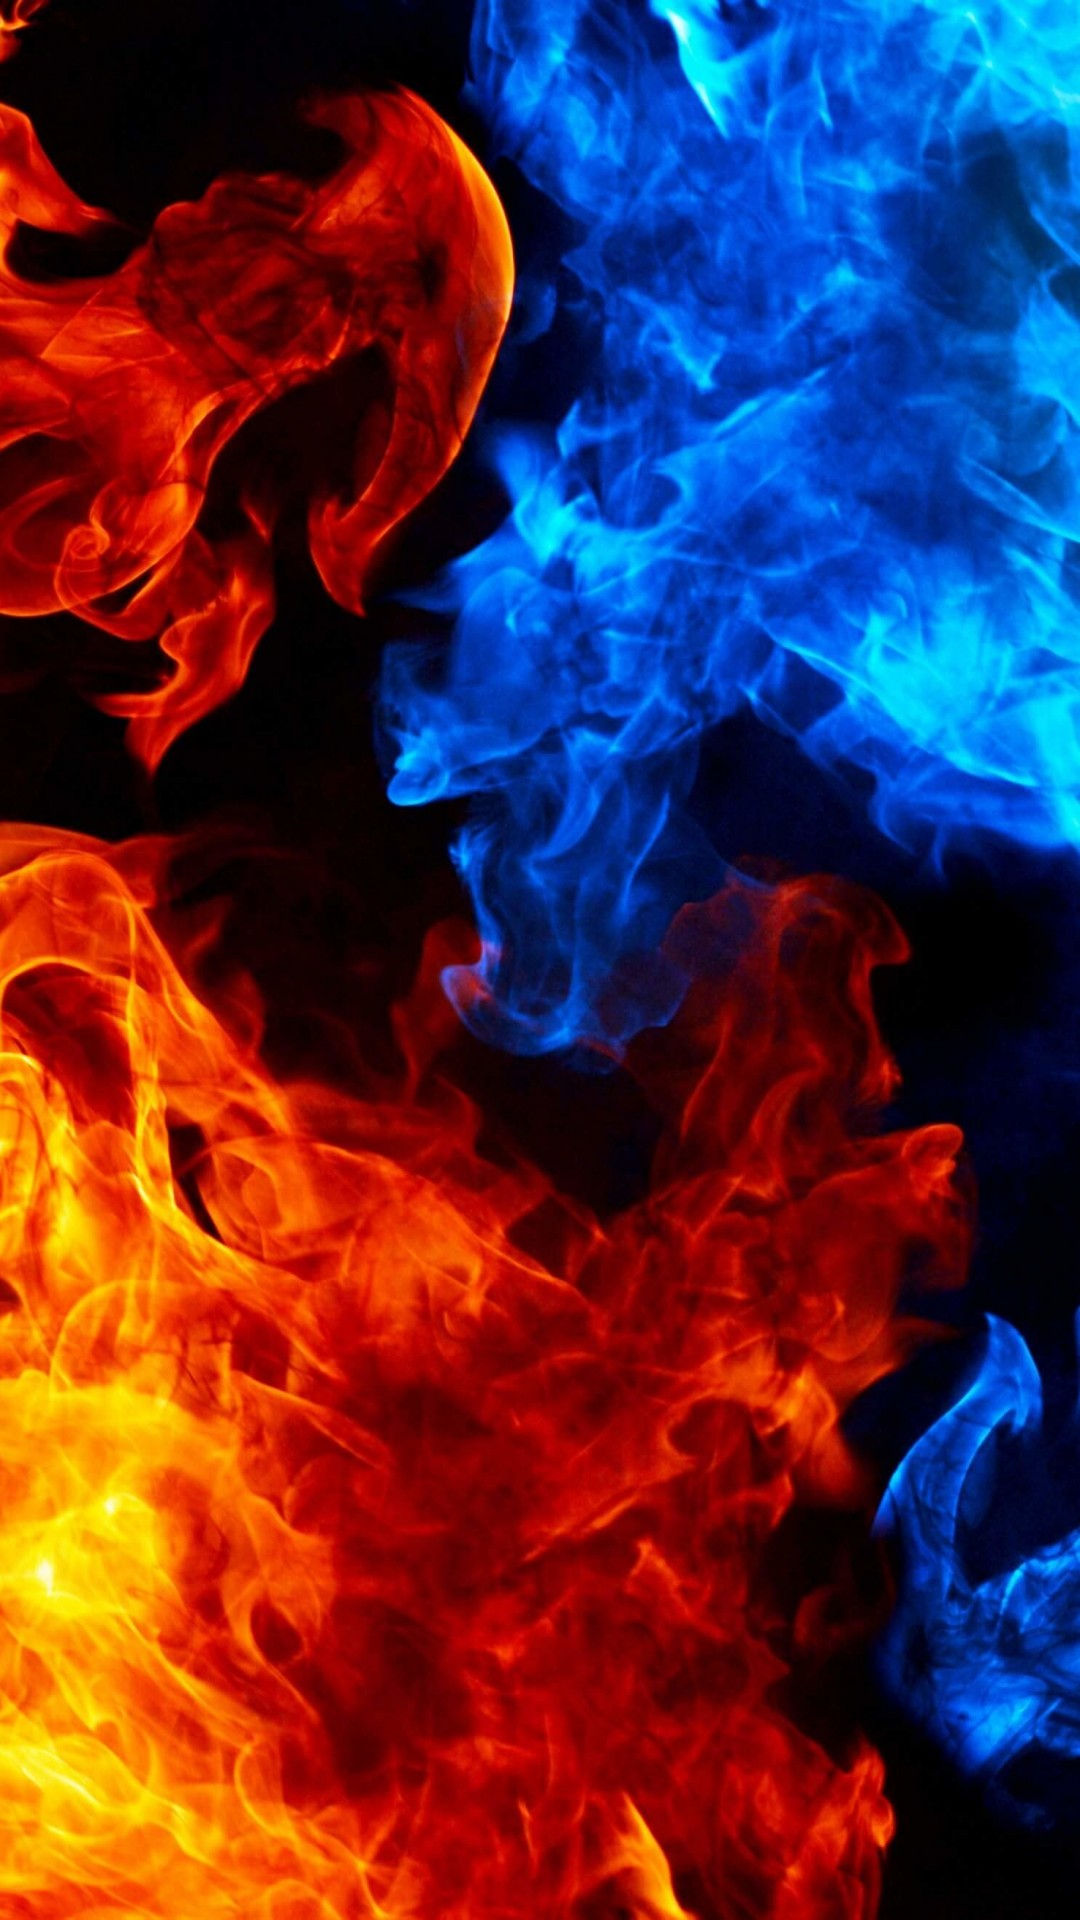 Blue And Red Fire Wallpaper for Google Nexus 5X